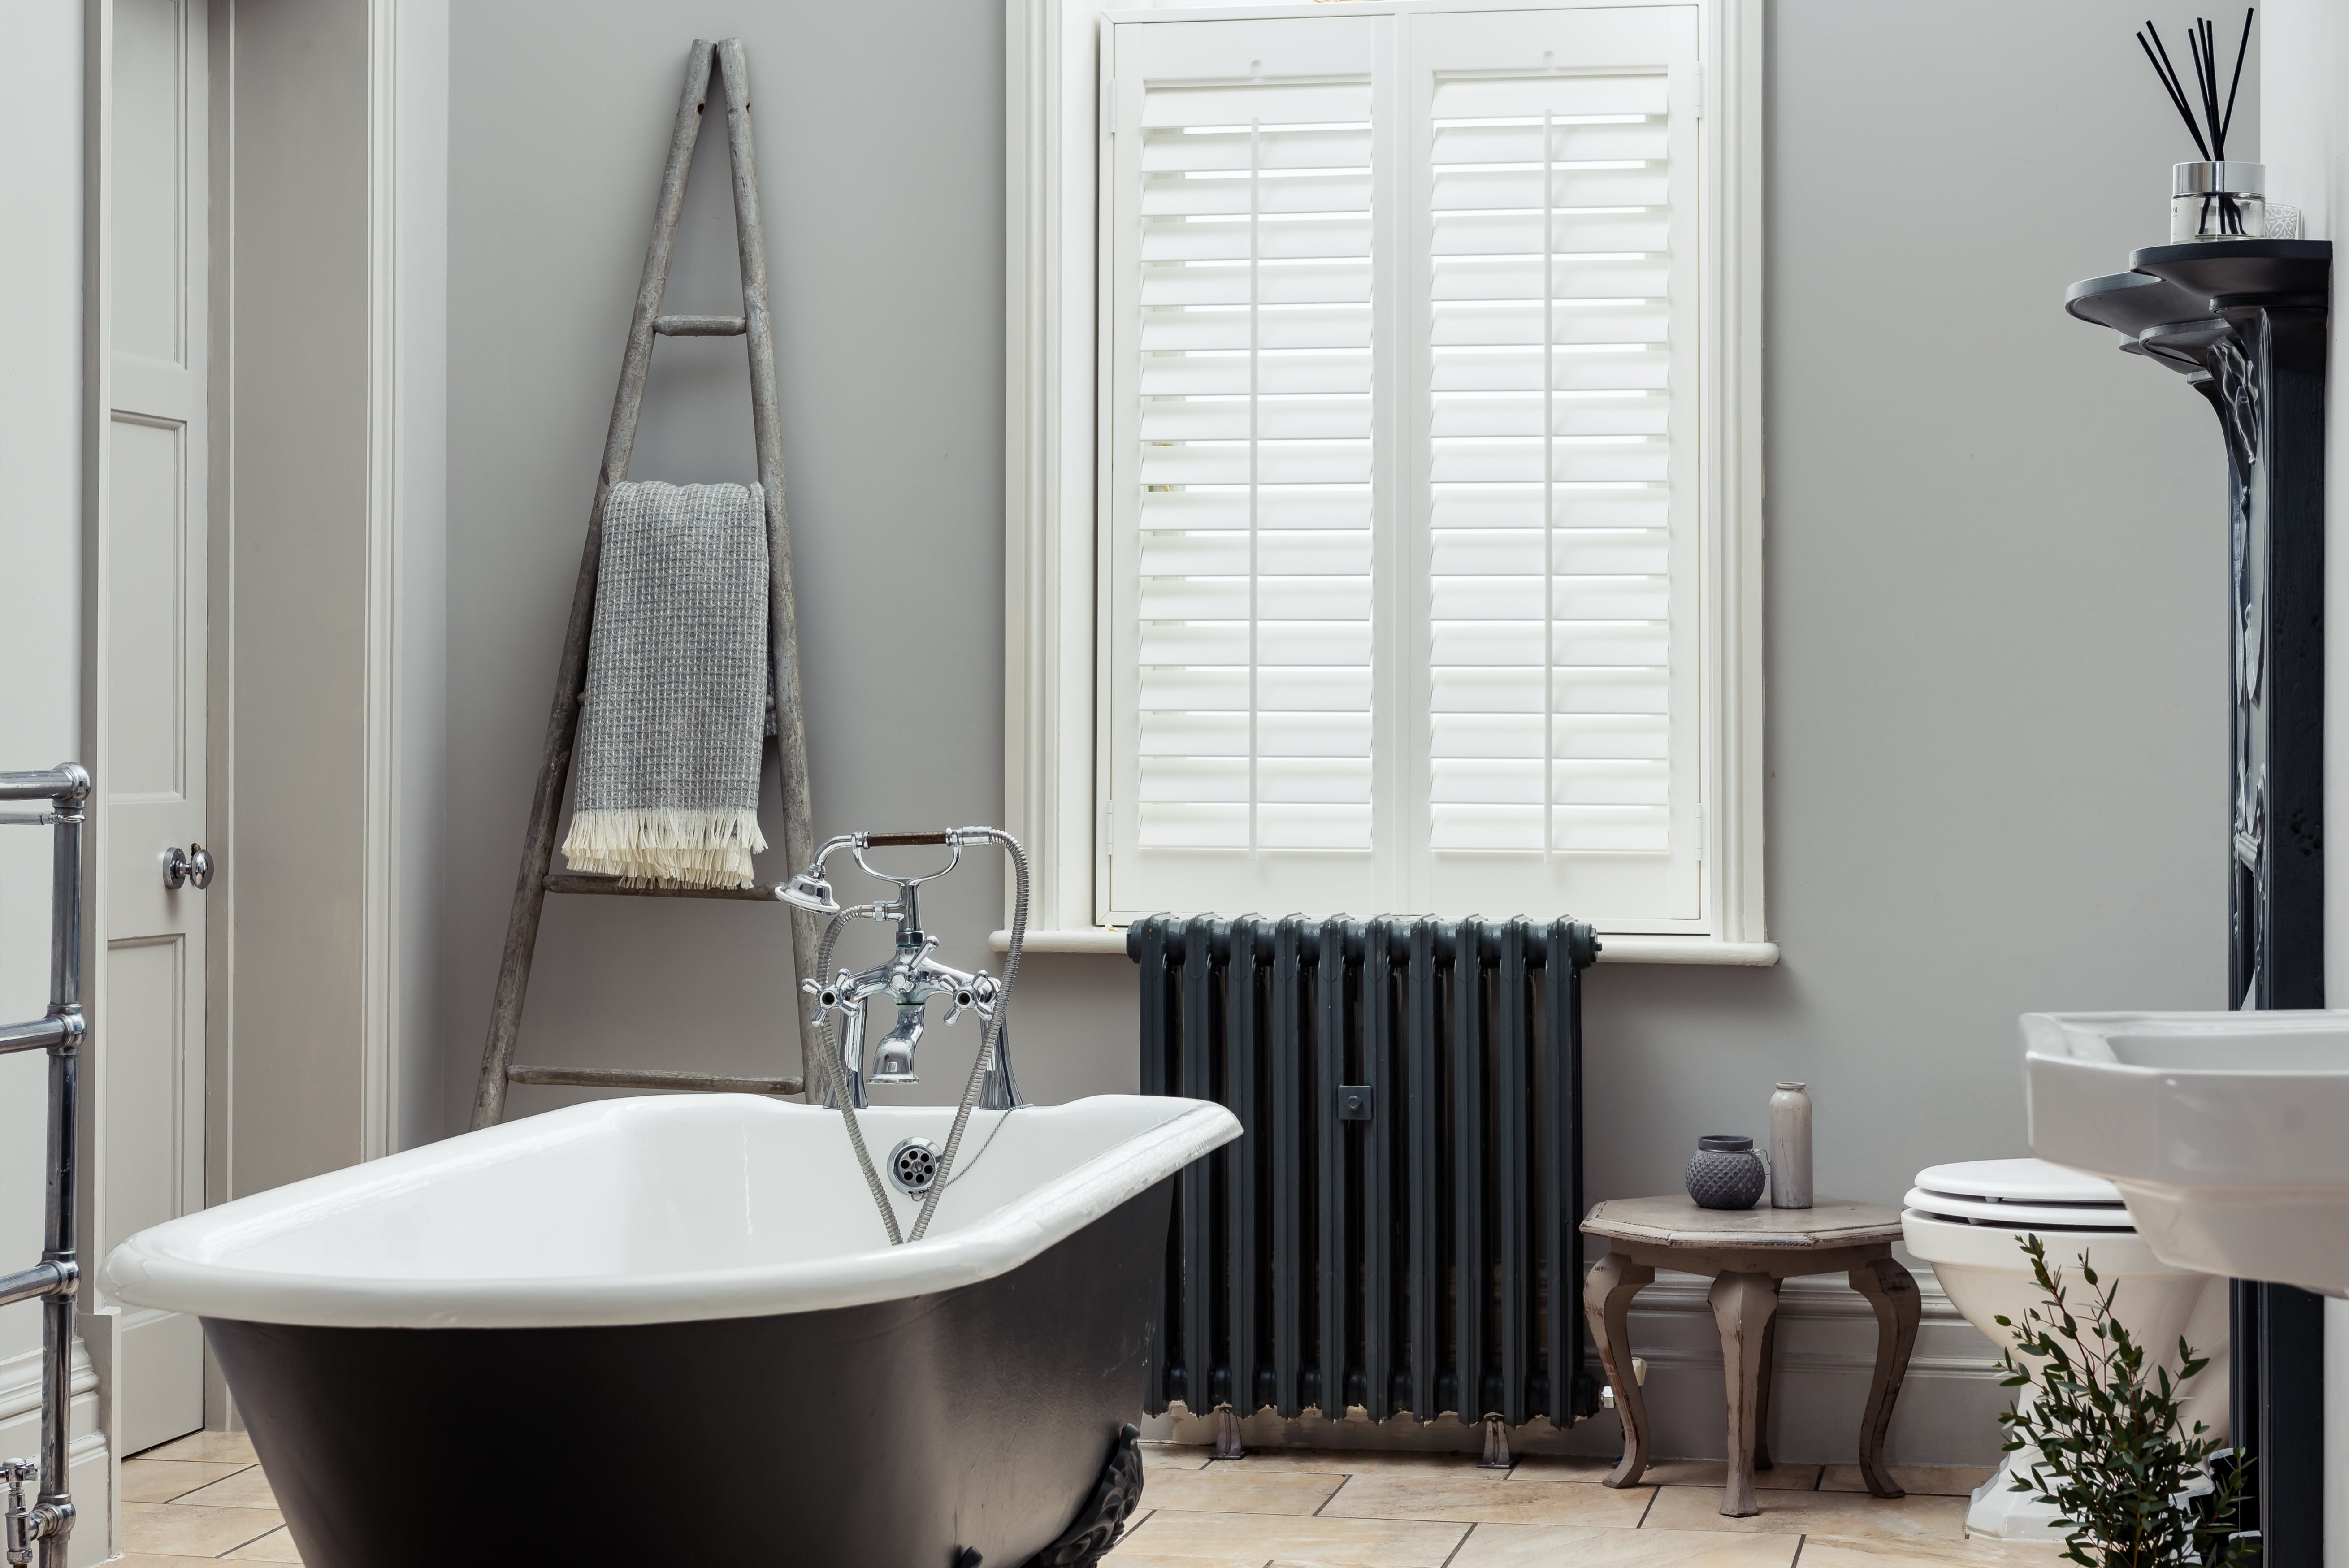 Bathroom shutters vinyl waterproof by Shutterly Fabulous